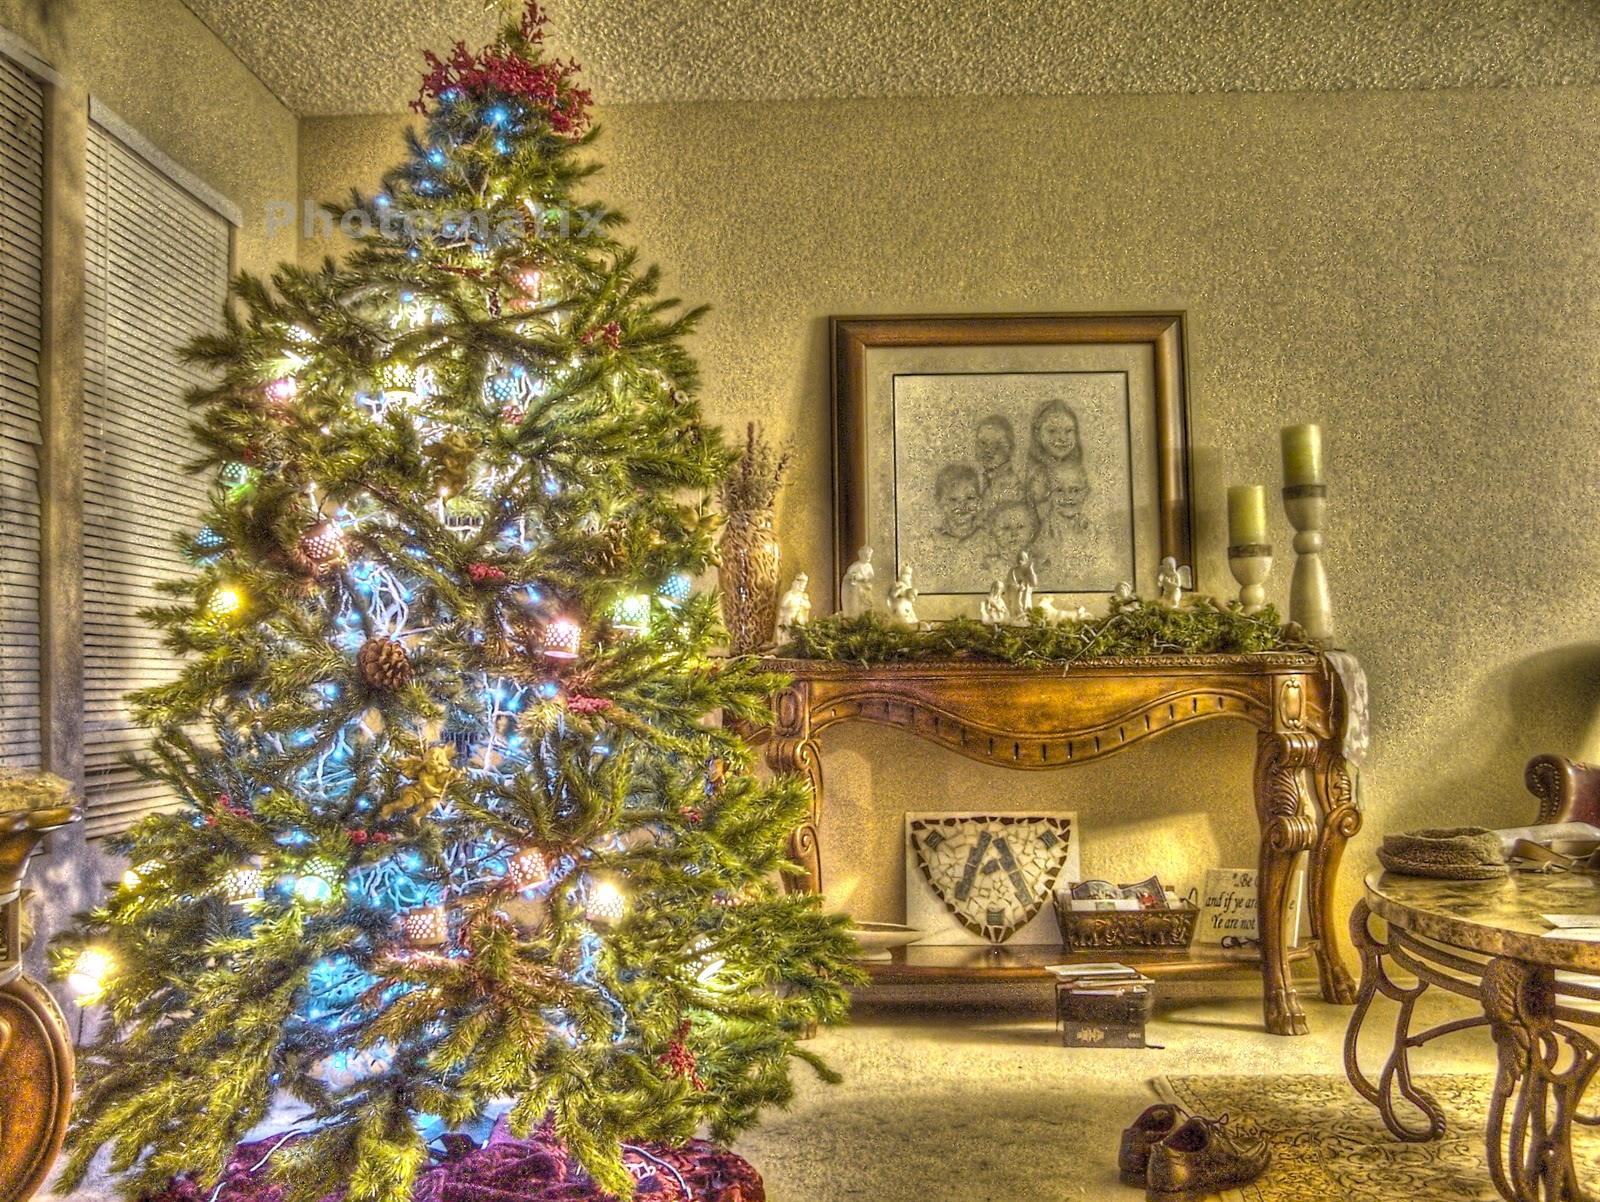 Merry Little Christmas 2011.Clover Autrey Fantasy And Romance Writer Have Yourself A